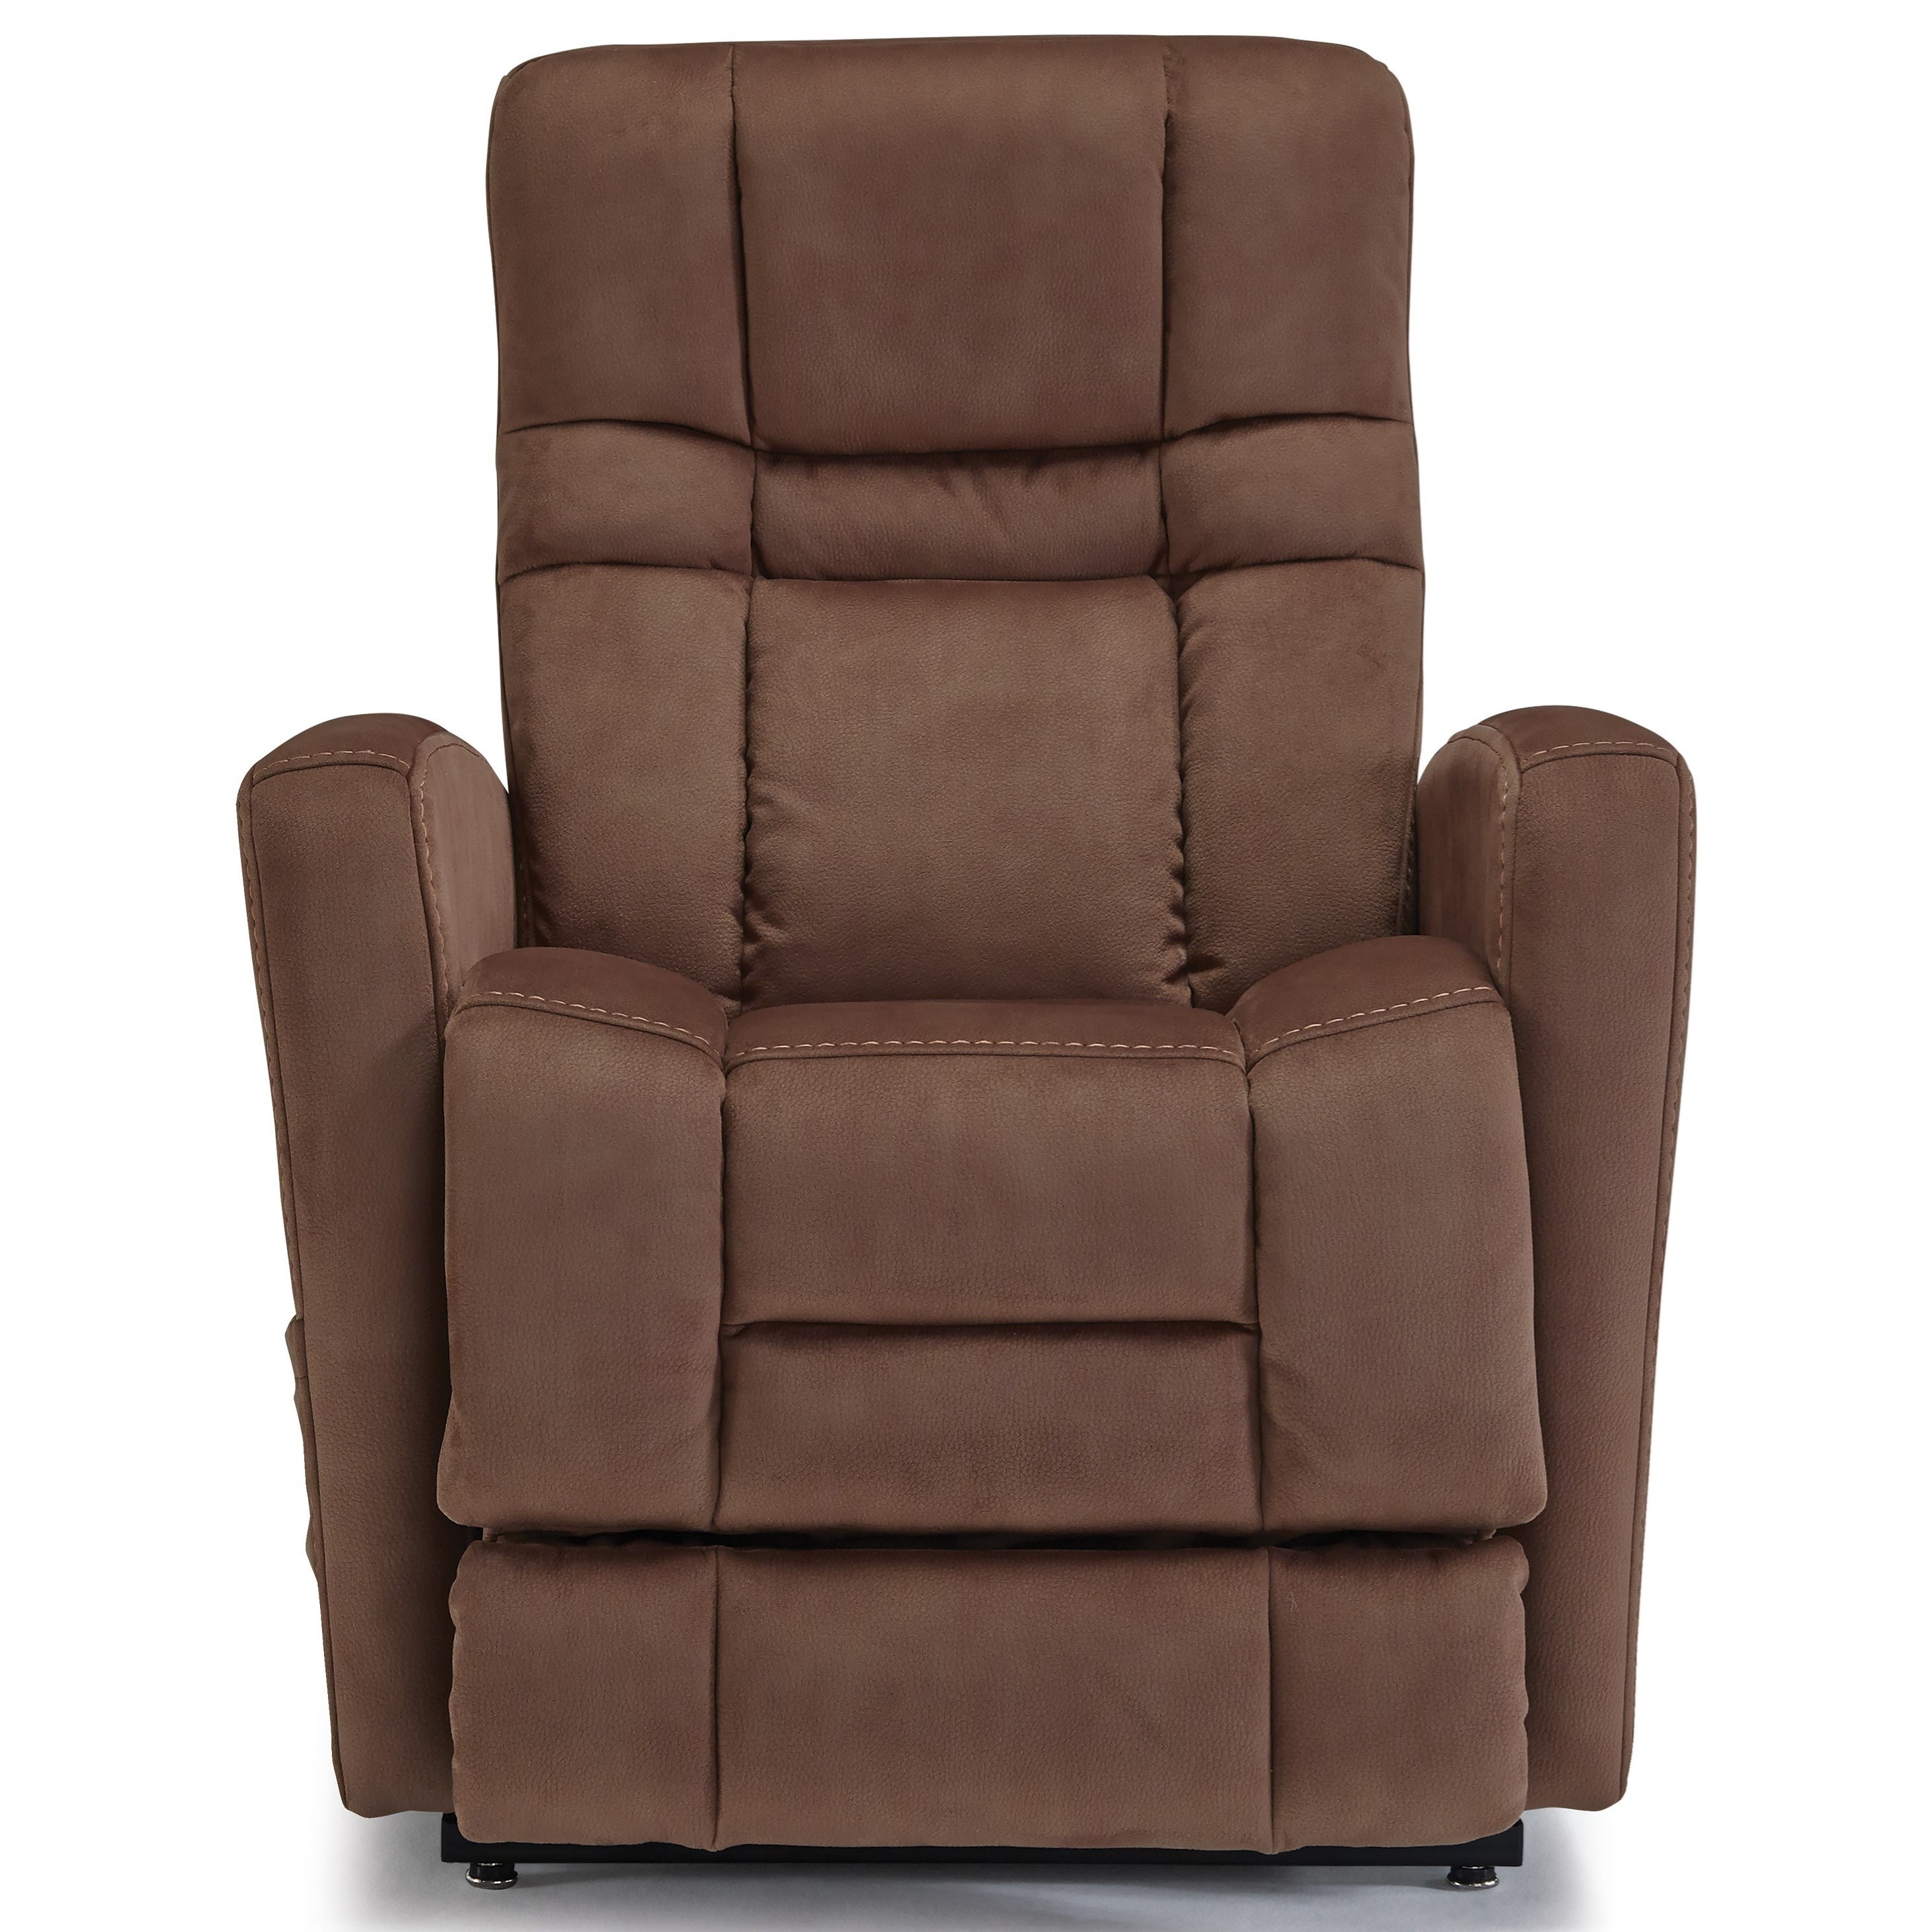 Augusta Lift Chair w/ Power by Palliser at Furniture and ApplianceMart